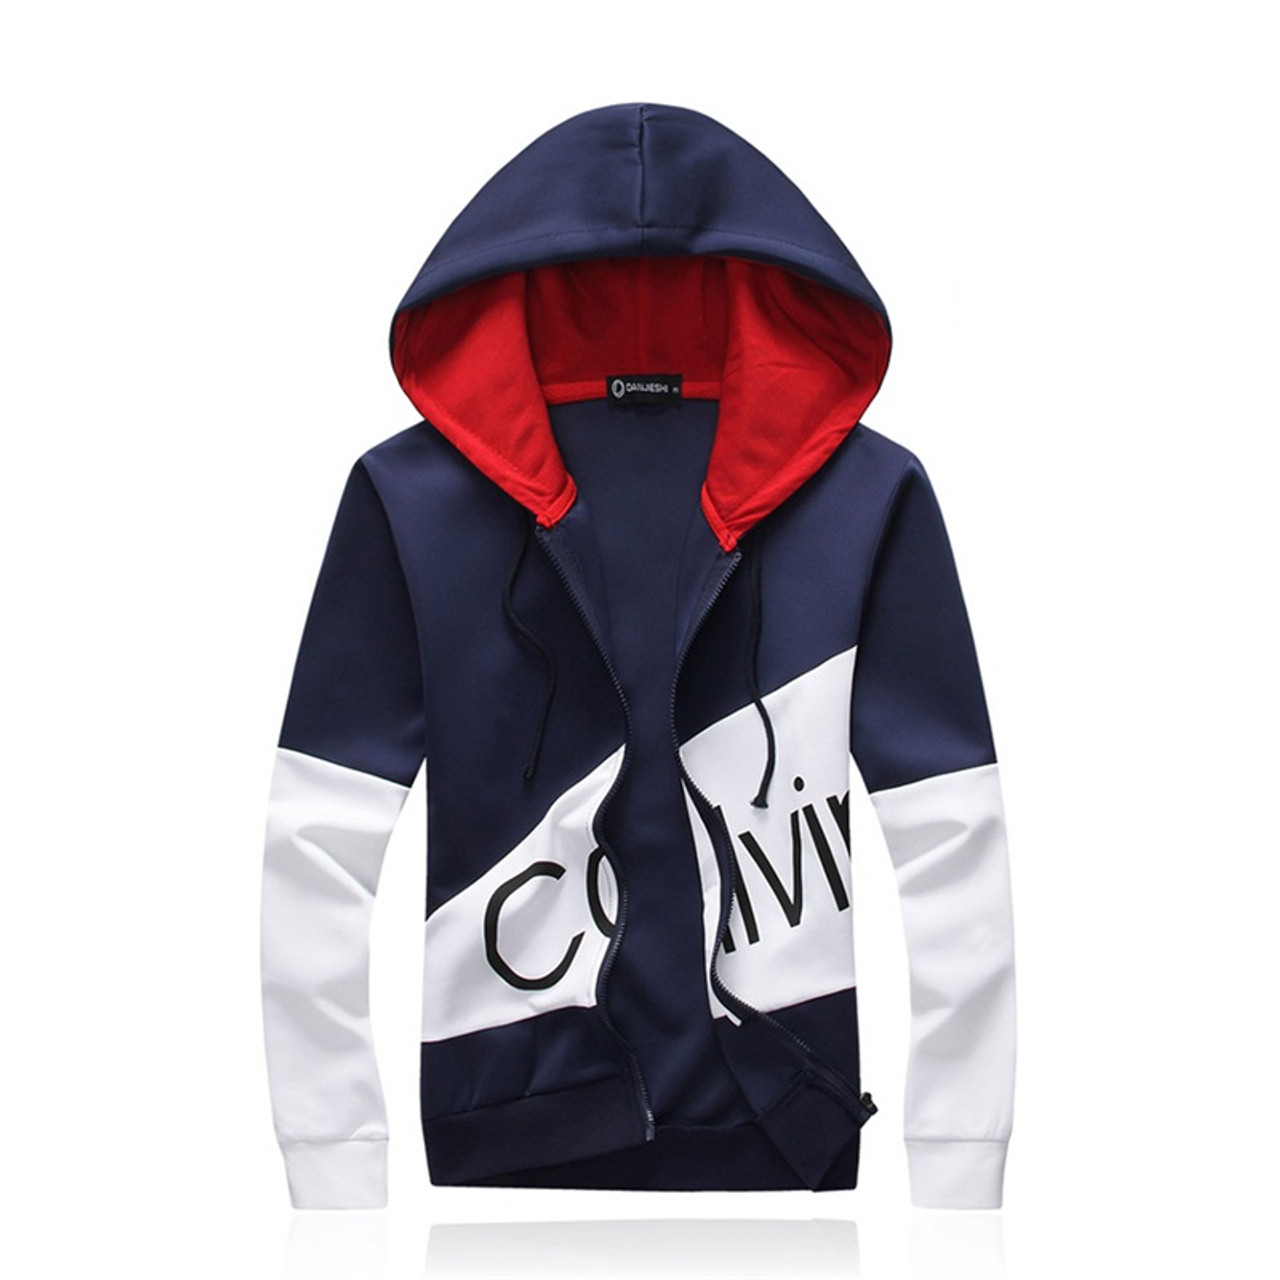 4c7f187d8b3 ... Casual sporting suit men warm hooded tracksuit track polo men s sweat  suits set zipper patchwork letter ...